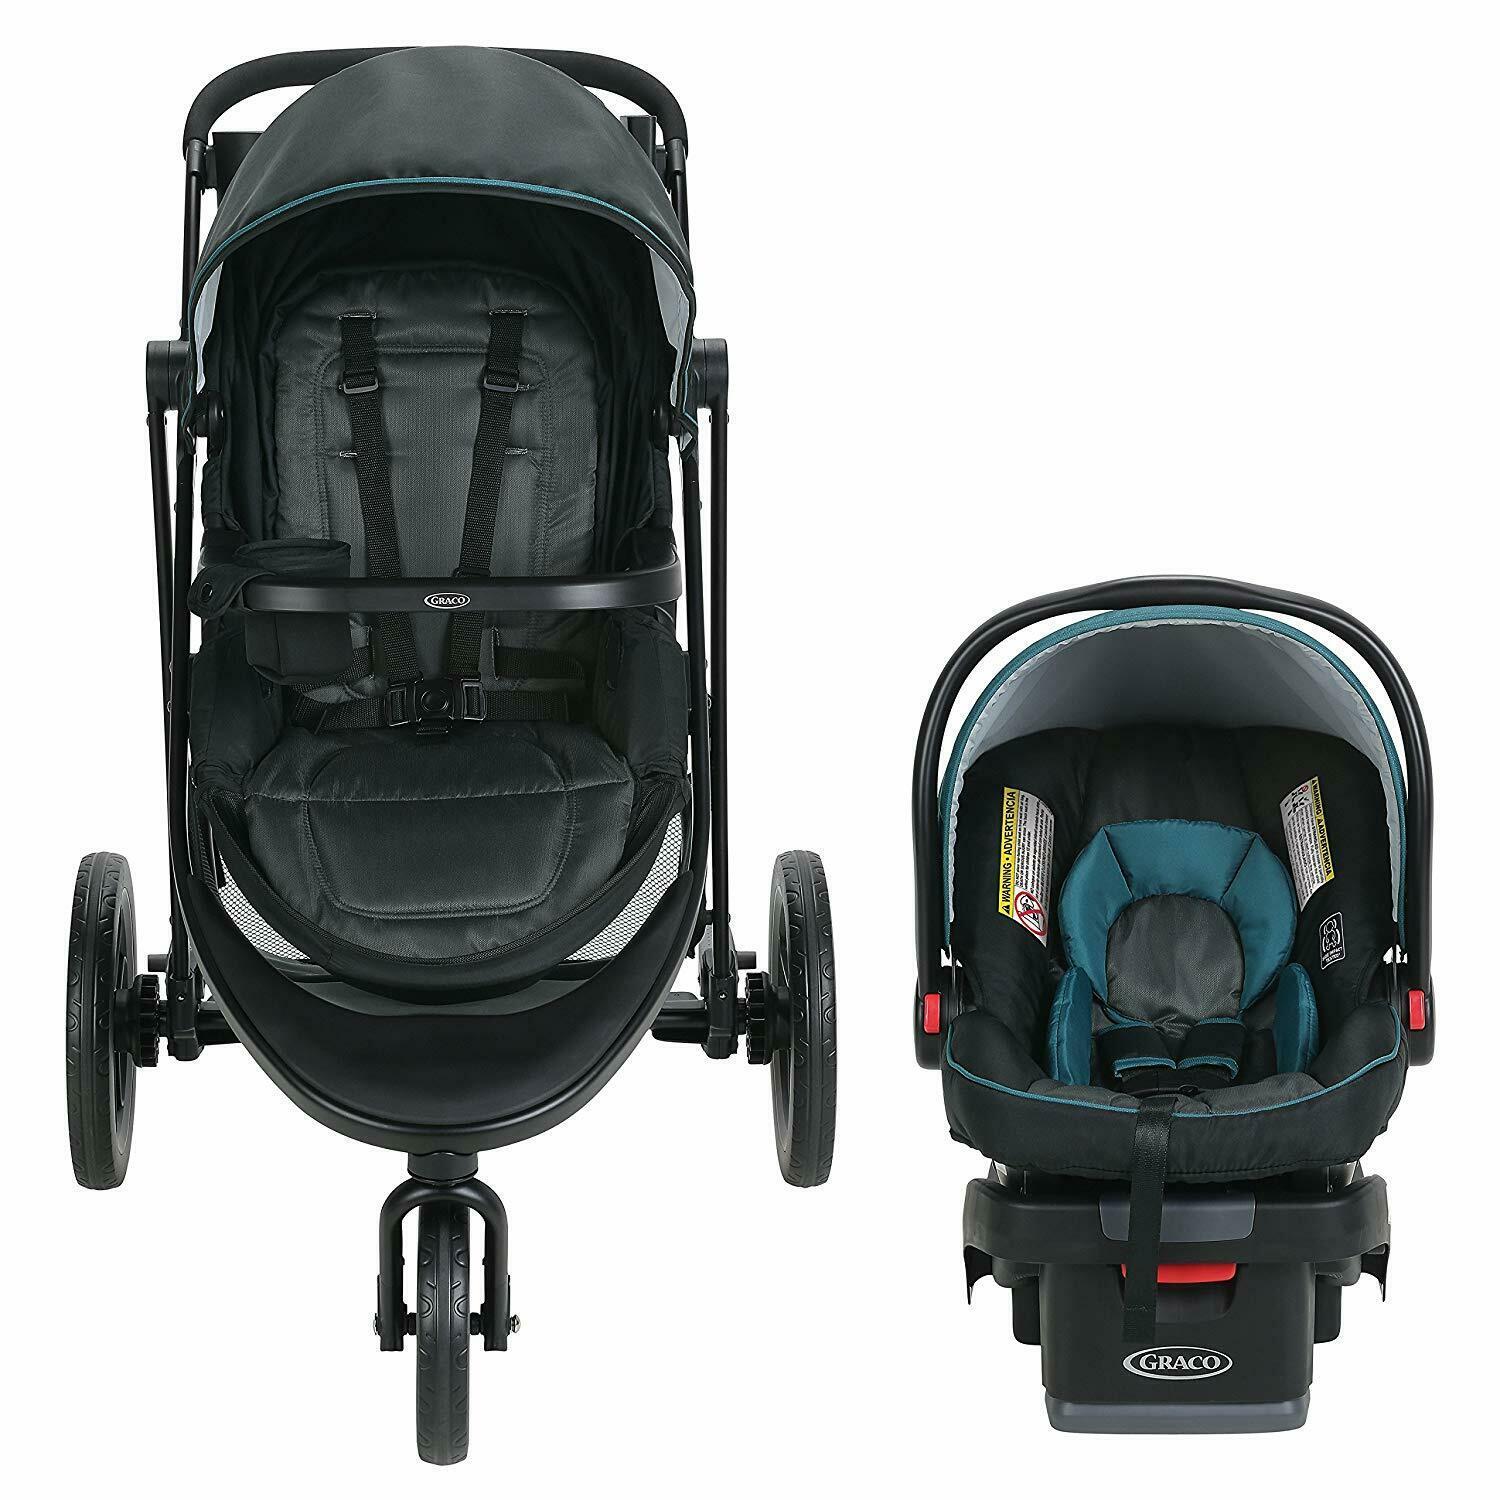 Graco Modes 3 Essentials LX Travel System in Sapphire